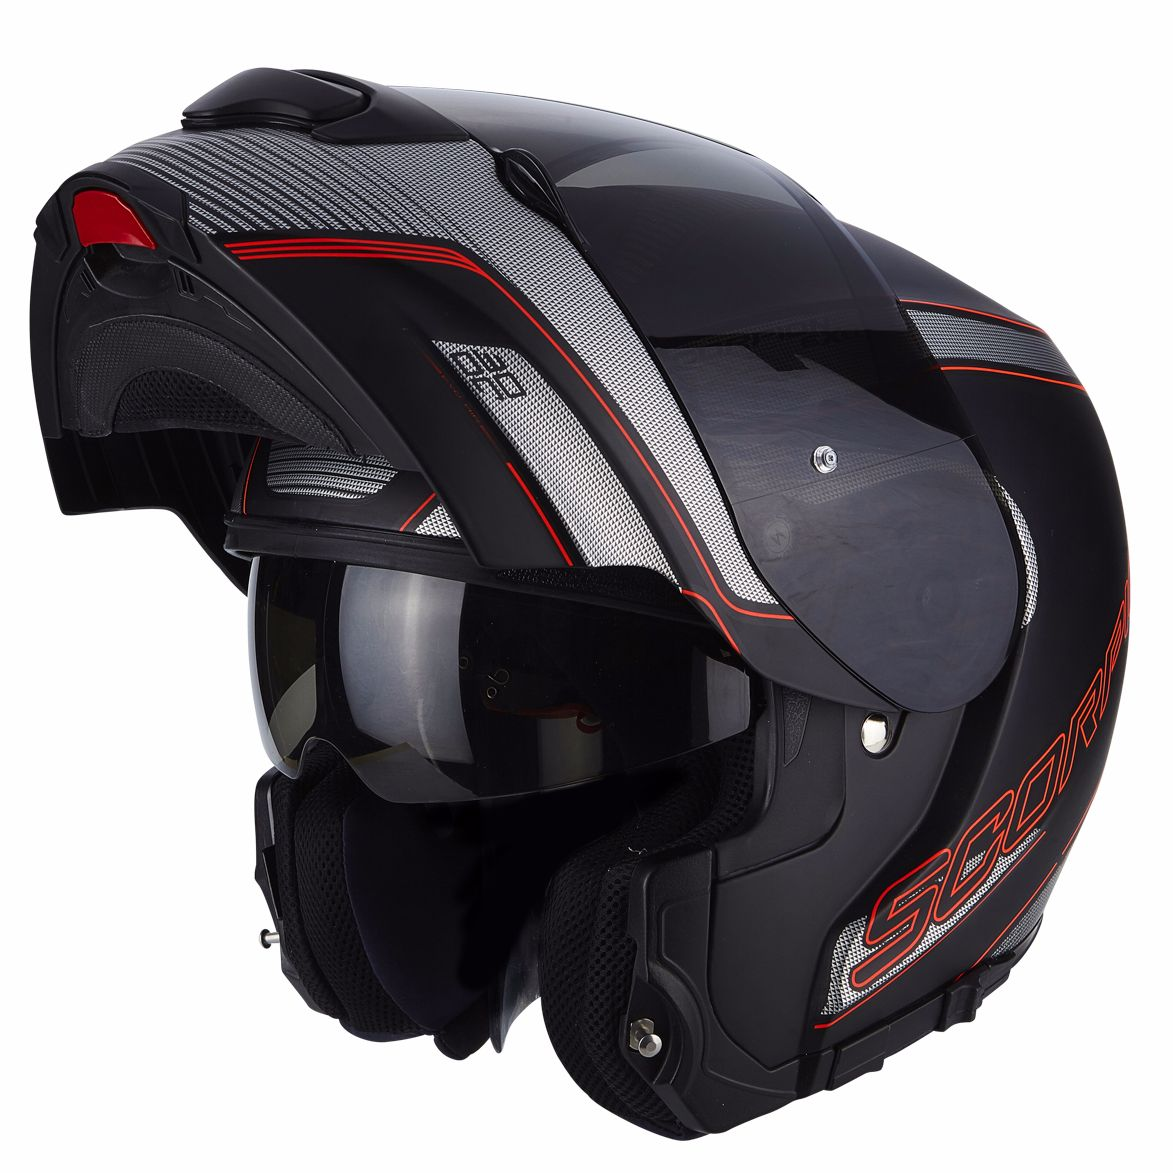 casque scorpion exo exo 3000 air stroll equipement du pilote access. Black Bedroom Furniture Sets. Home Design Ideas